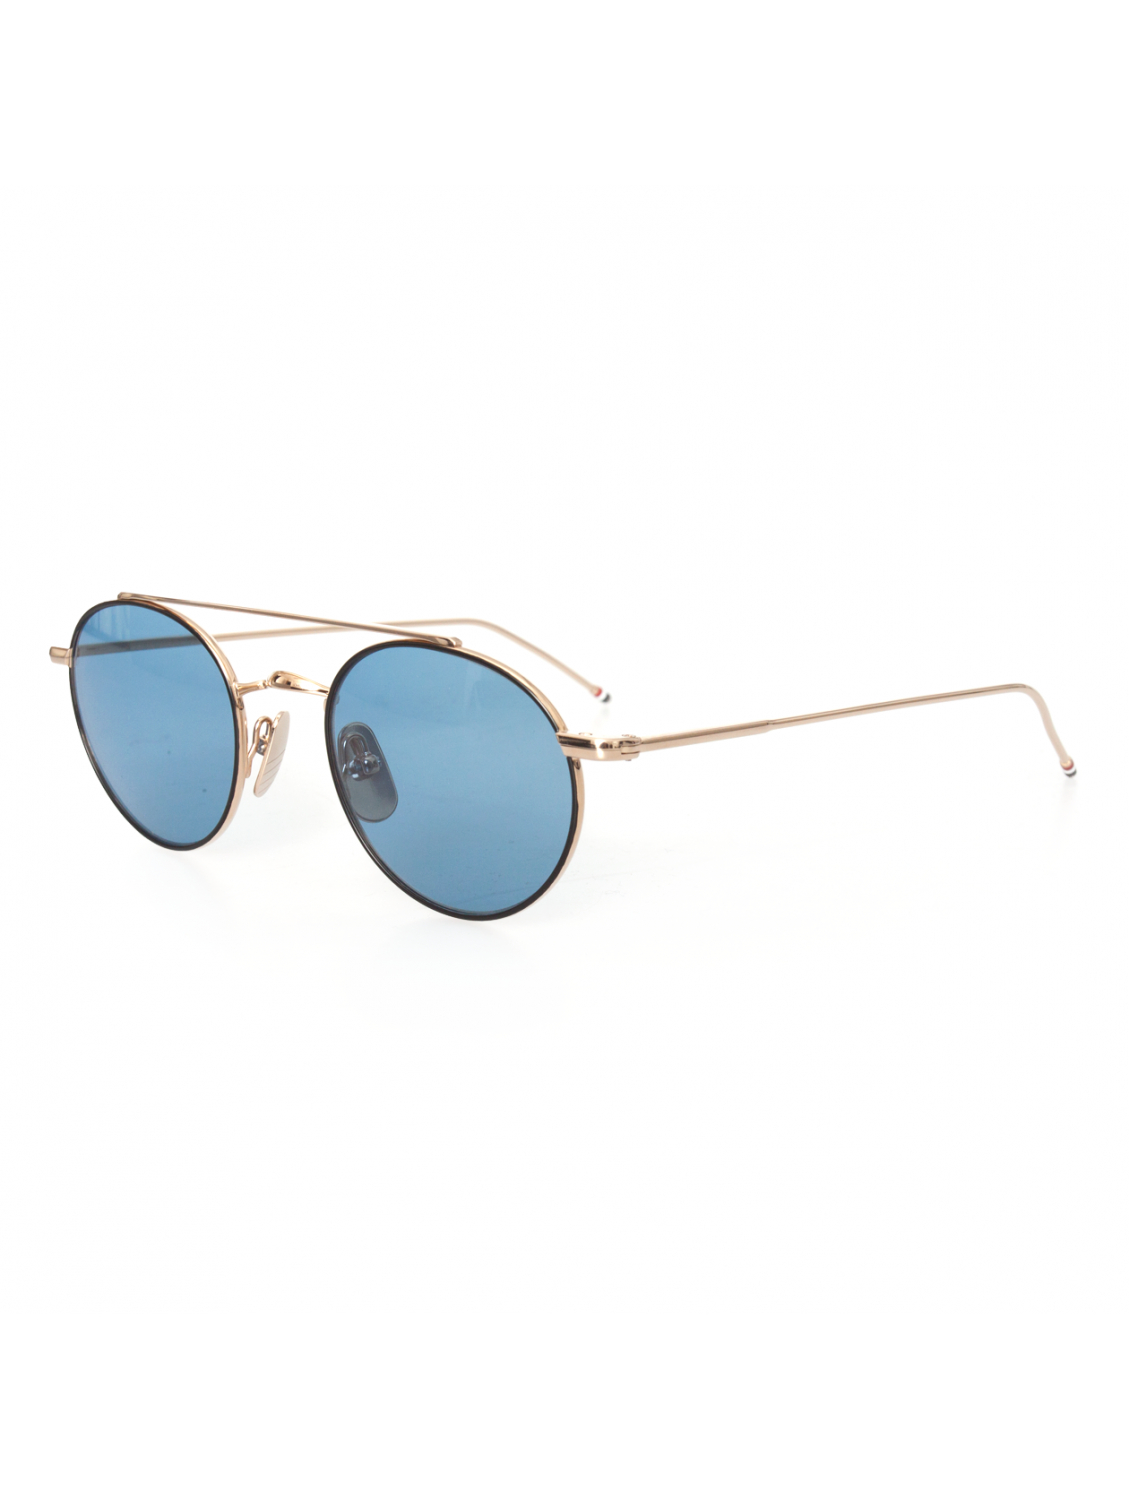 Round Gold Frame Sunglasses By Thom Browne : Thom Browne Round-Frame Metal Sunglasses Gold/Black/Blue ...